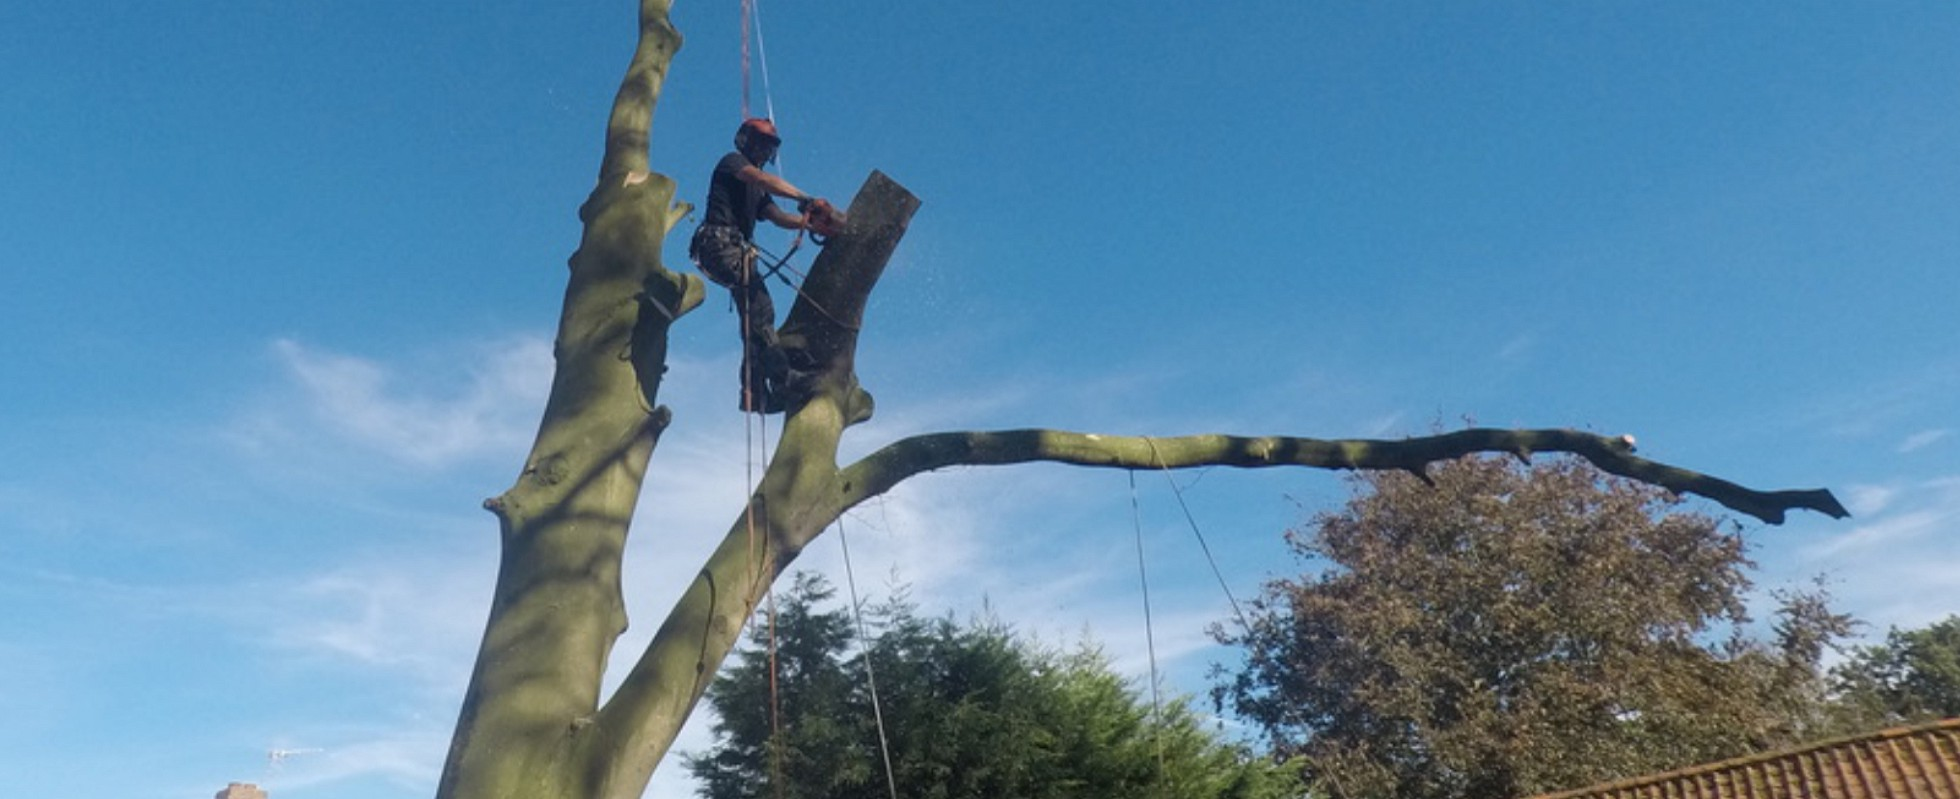 Andrew Turff up a tree while felling it using the sectional dismantling method.